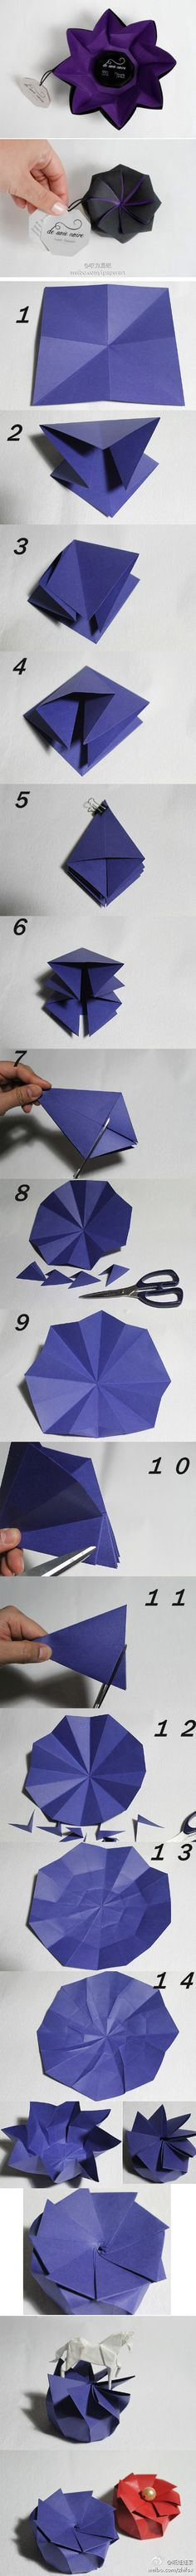 139 best origami 3 d images on pinterest in 2018 origami paper origami flower box tutorial mightylinksfo